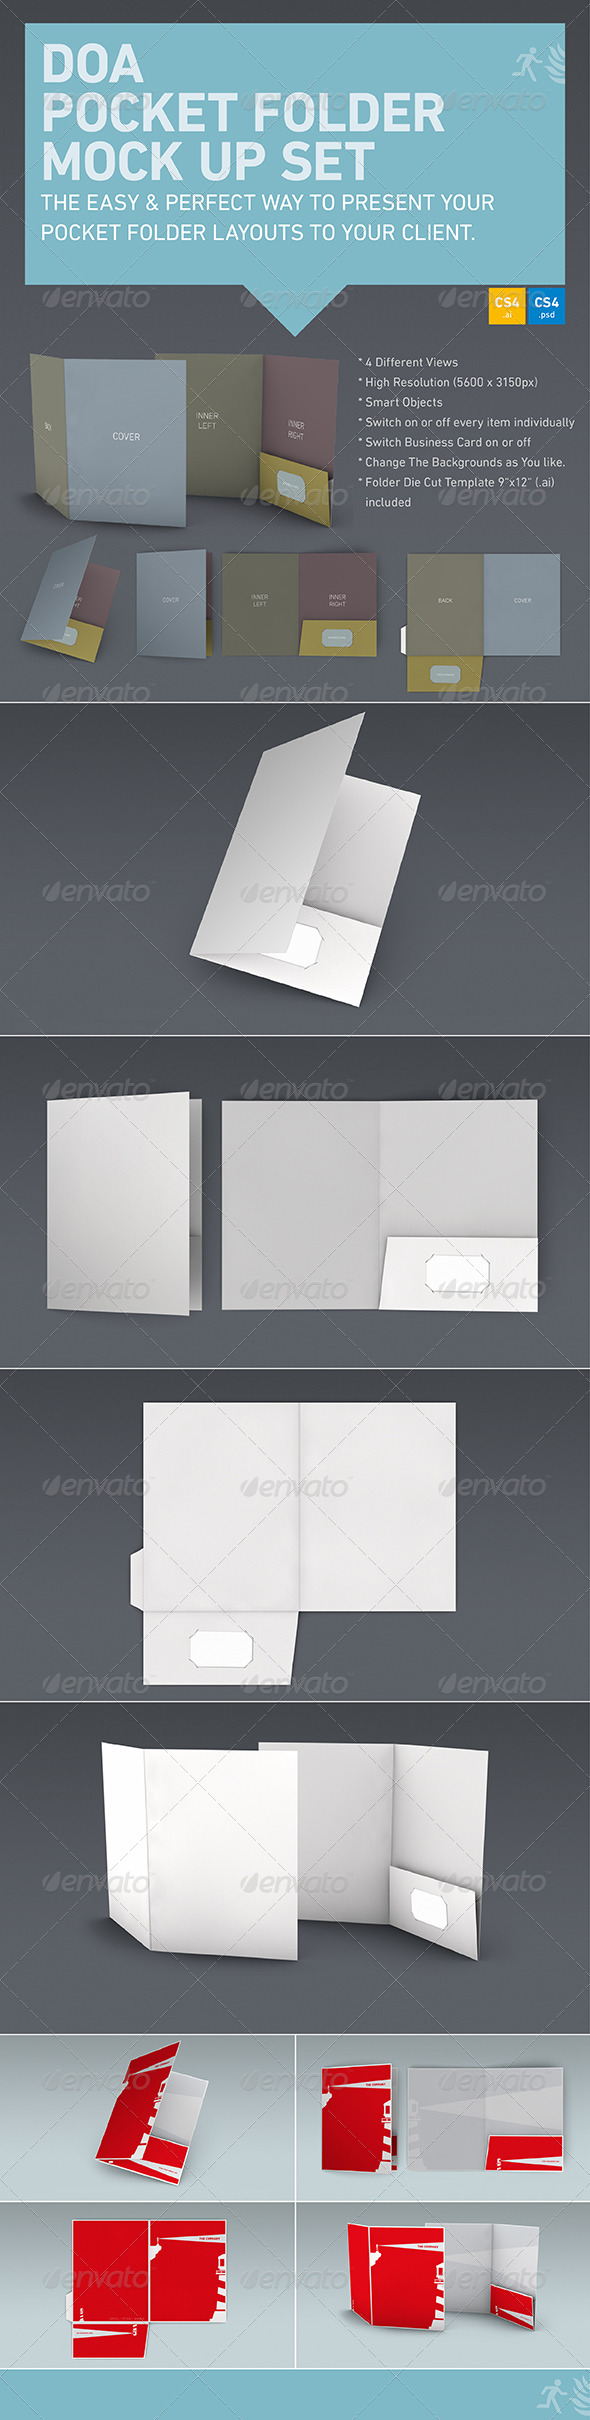 DOA Pocket Folder Mock Up Set - Stationery Print